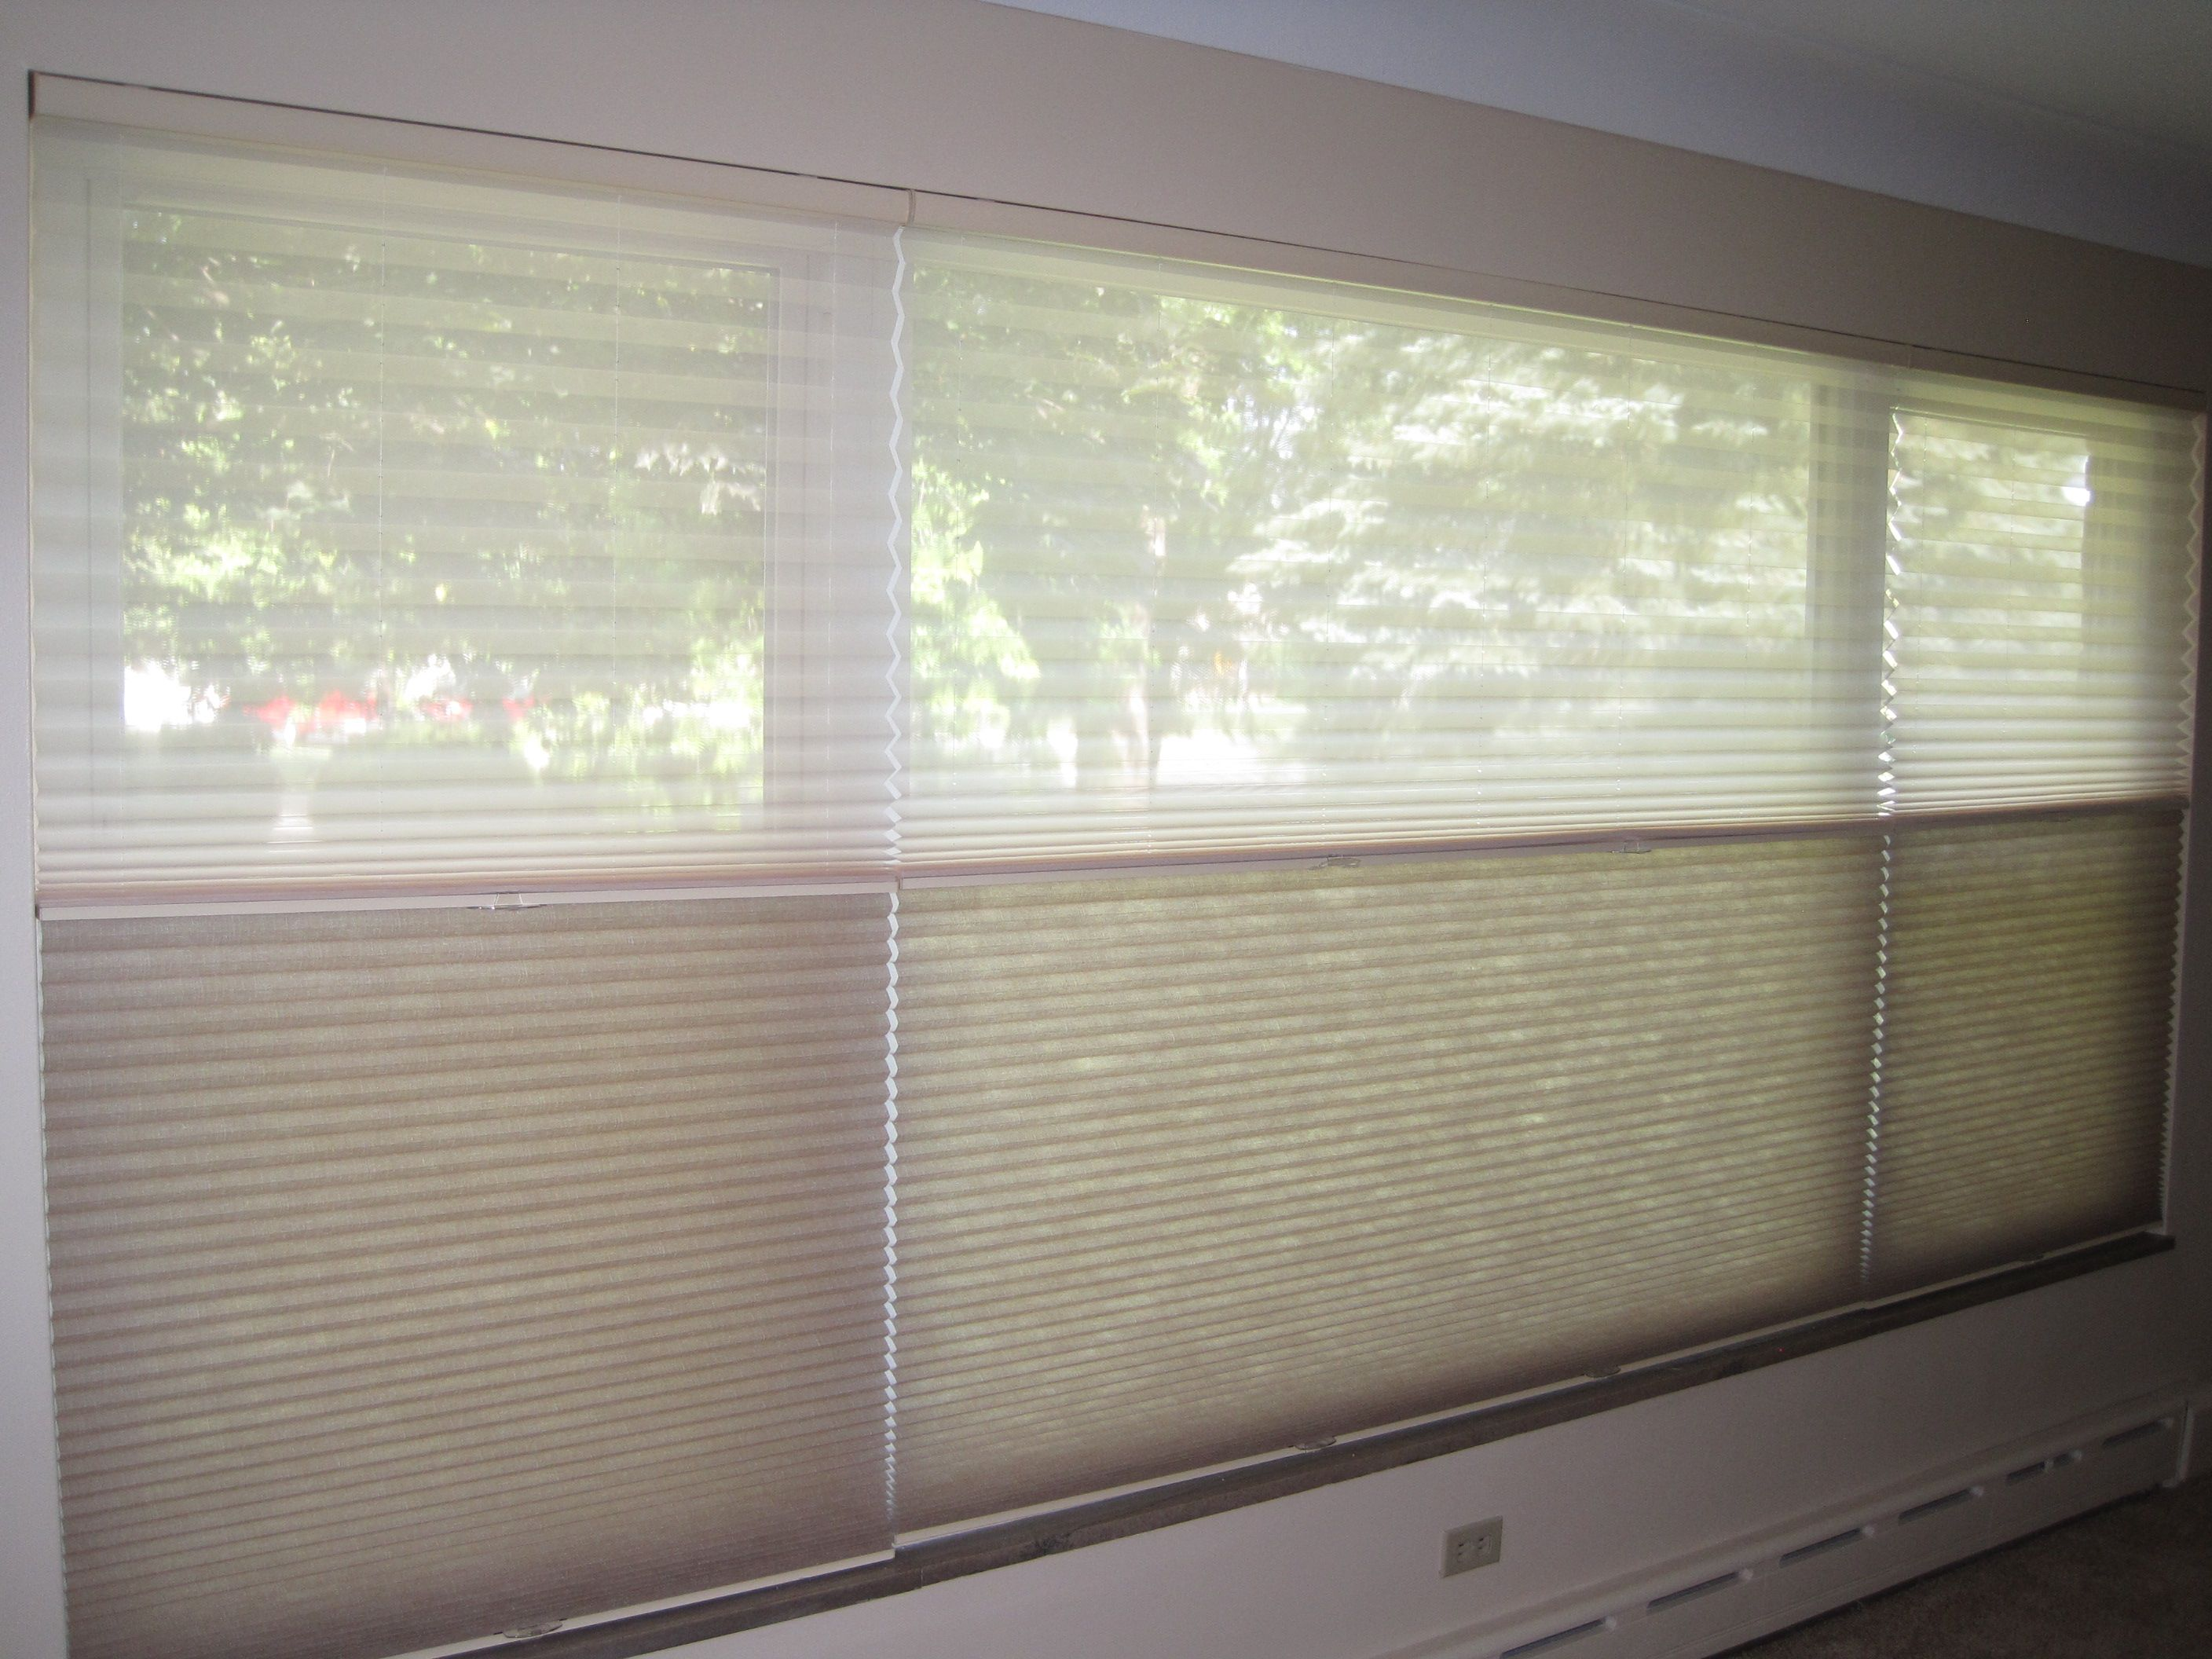 Shades for large windows - This Is The First Trilight Shade We Installed In Toledo Ohio This Is For A